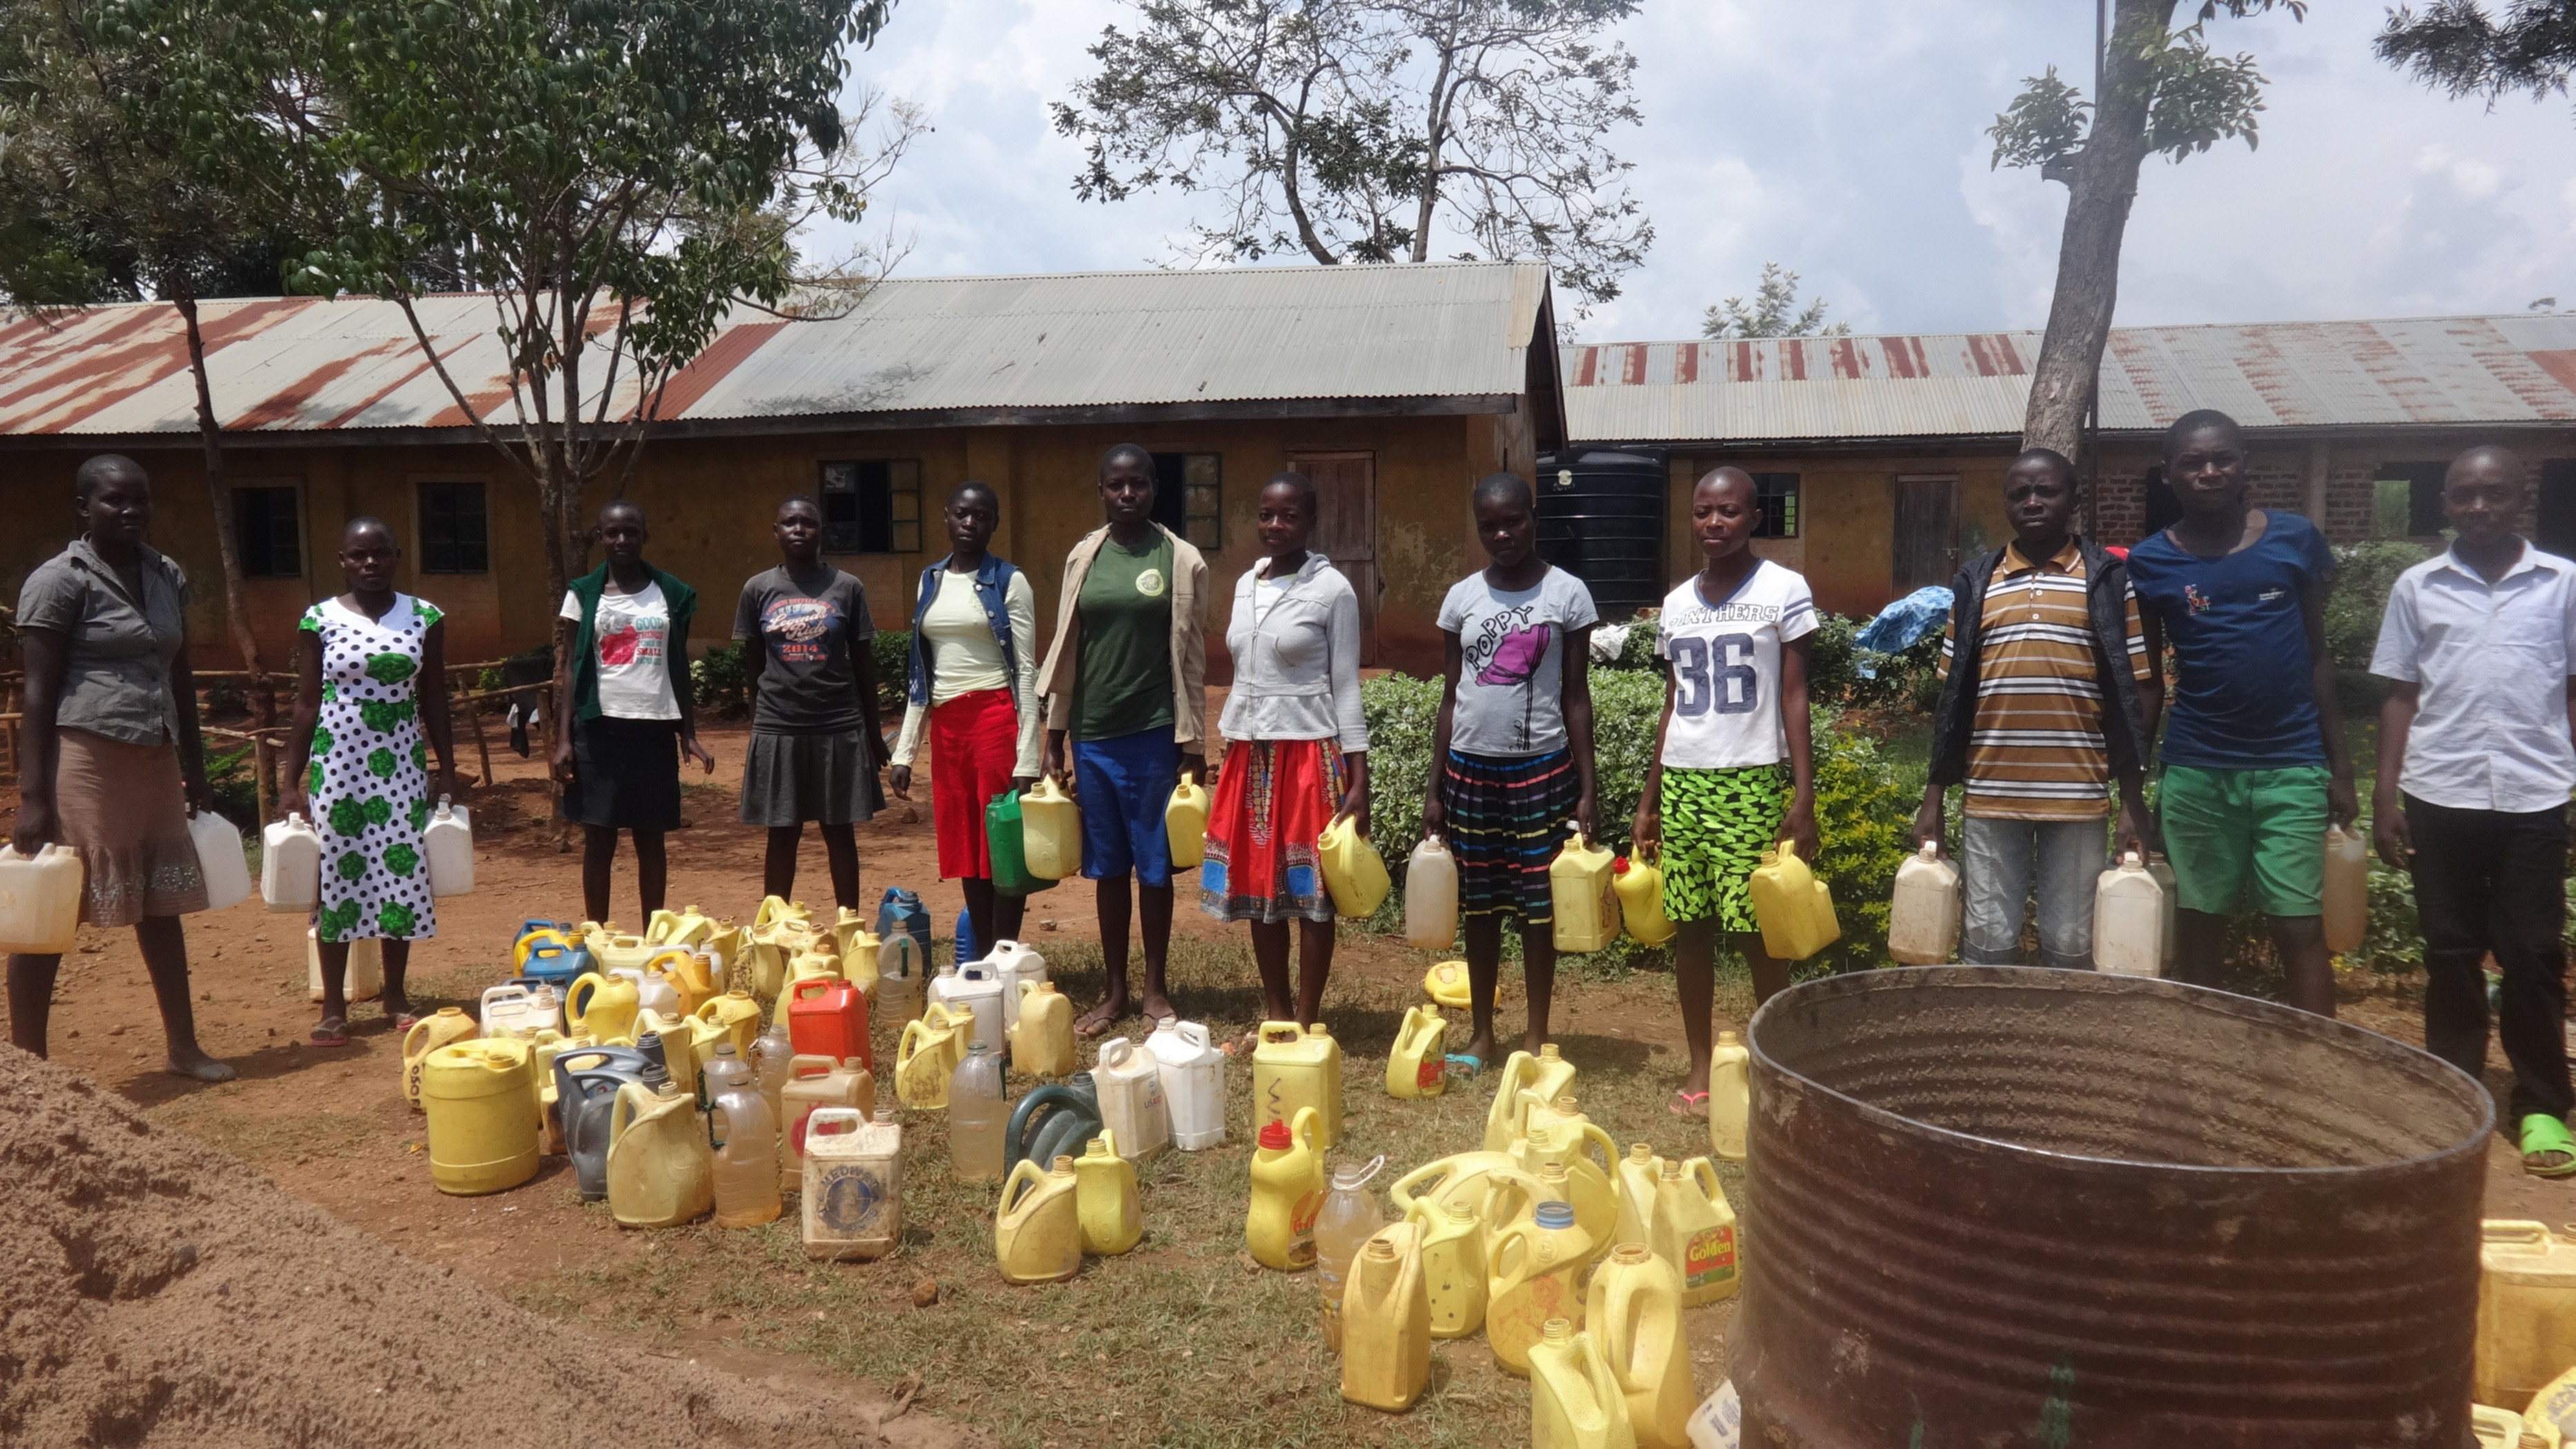 8 kenya4677 students fetching water for construction